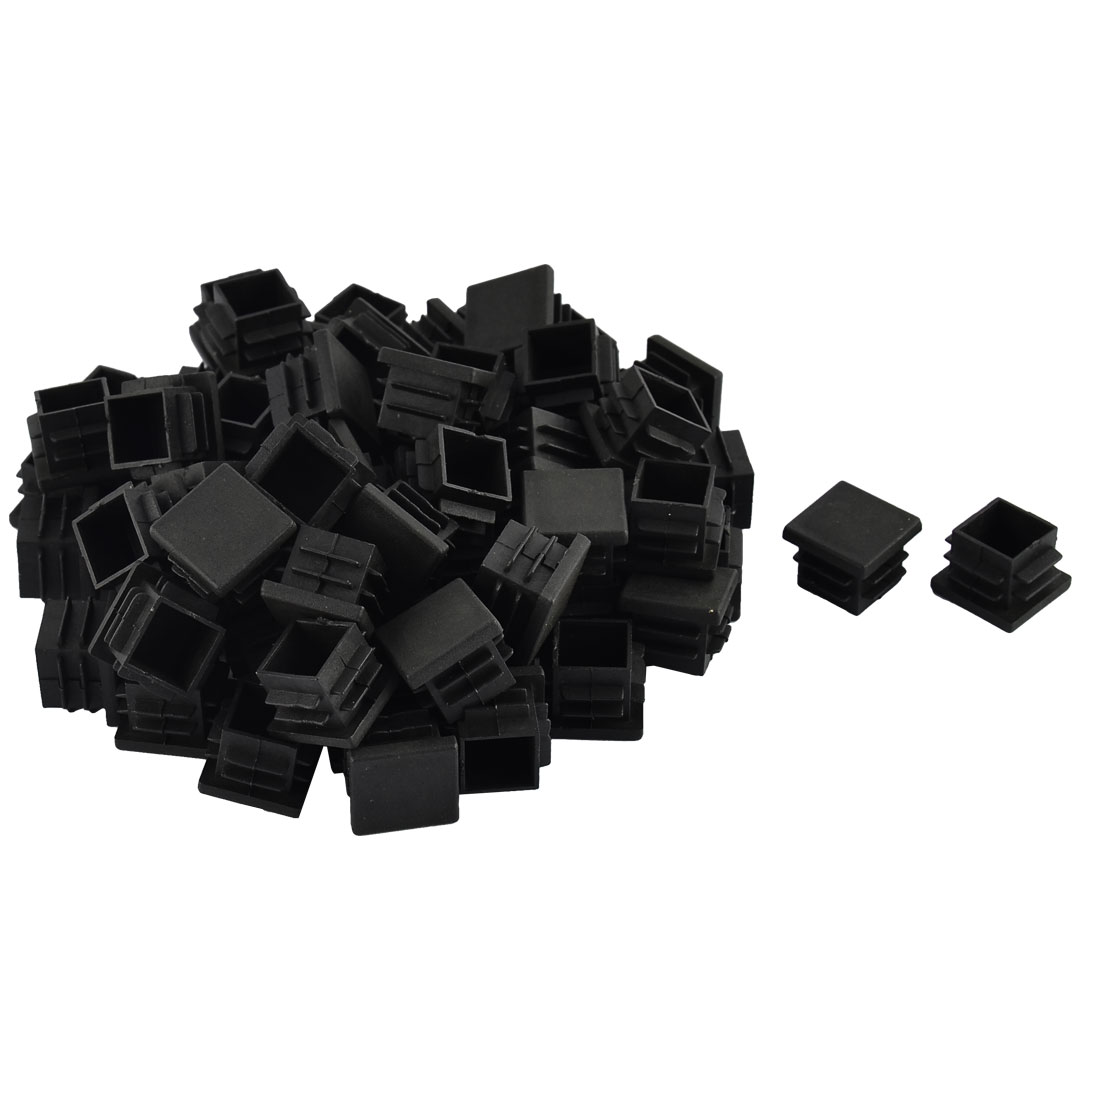 Furniture Table Chair Legs Plastic Square Tube Pipe Insert Cap Cover Black 19 x 19mm 70pcs